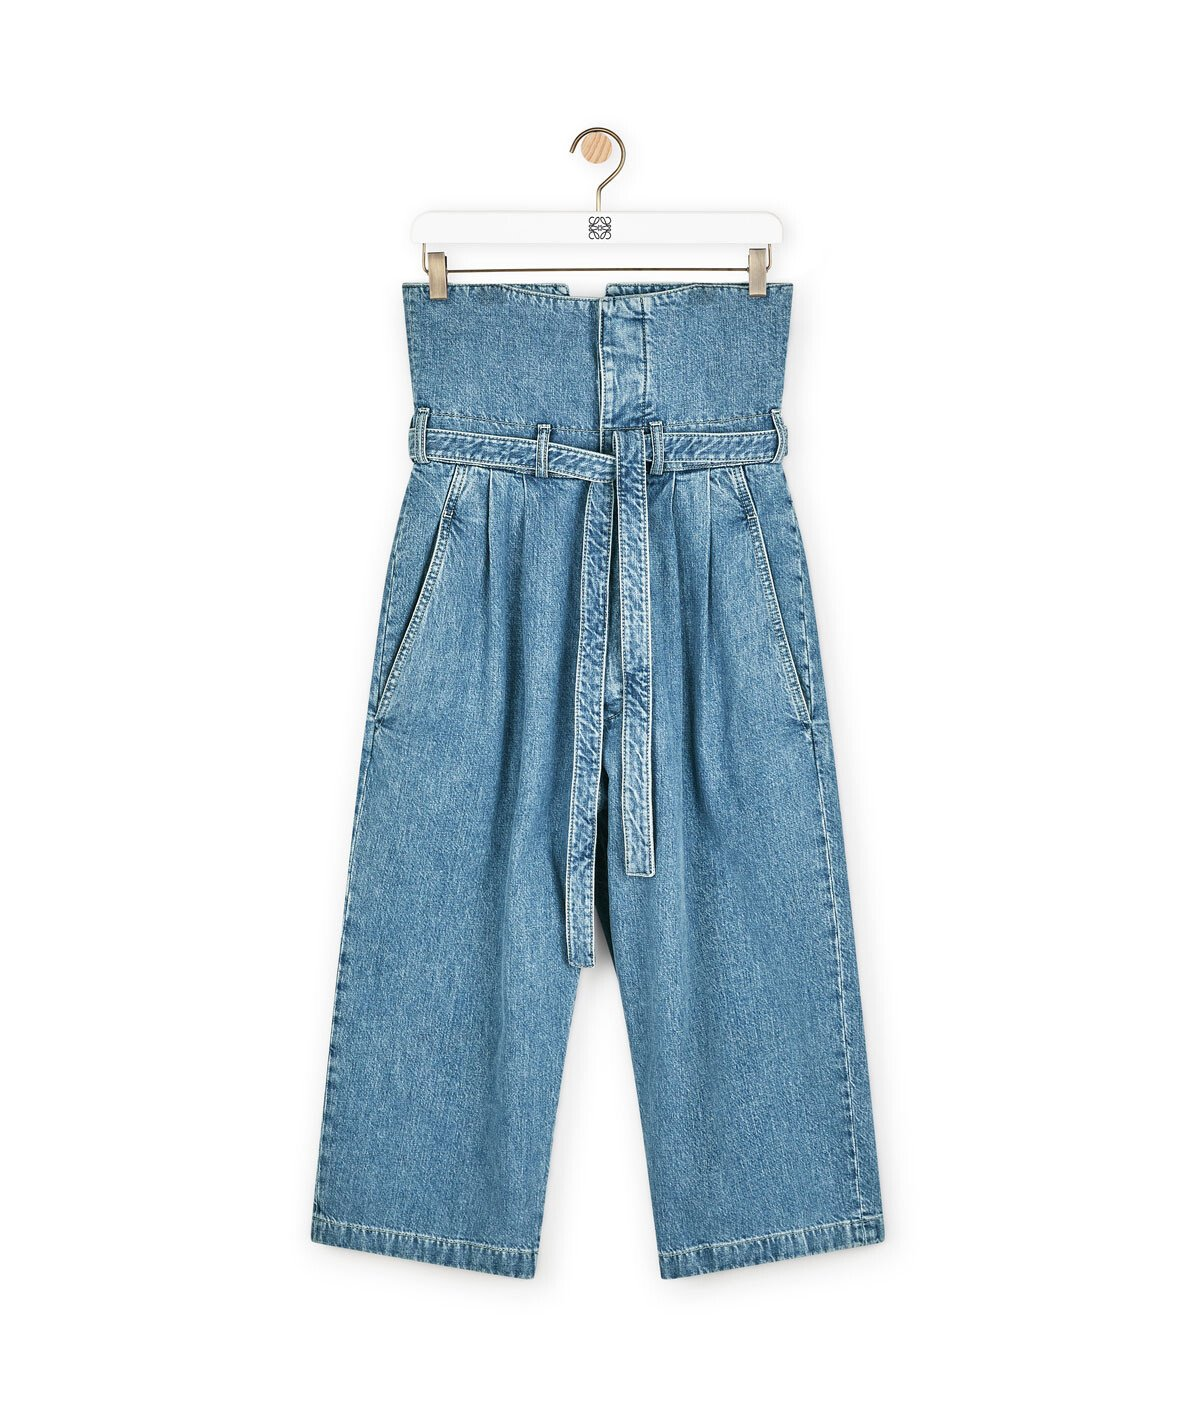 LOEWE Belted Pleated Oversize Jeans Azul Denim front